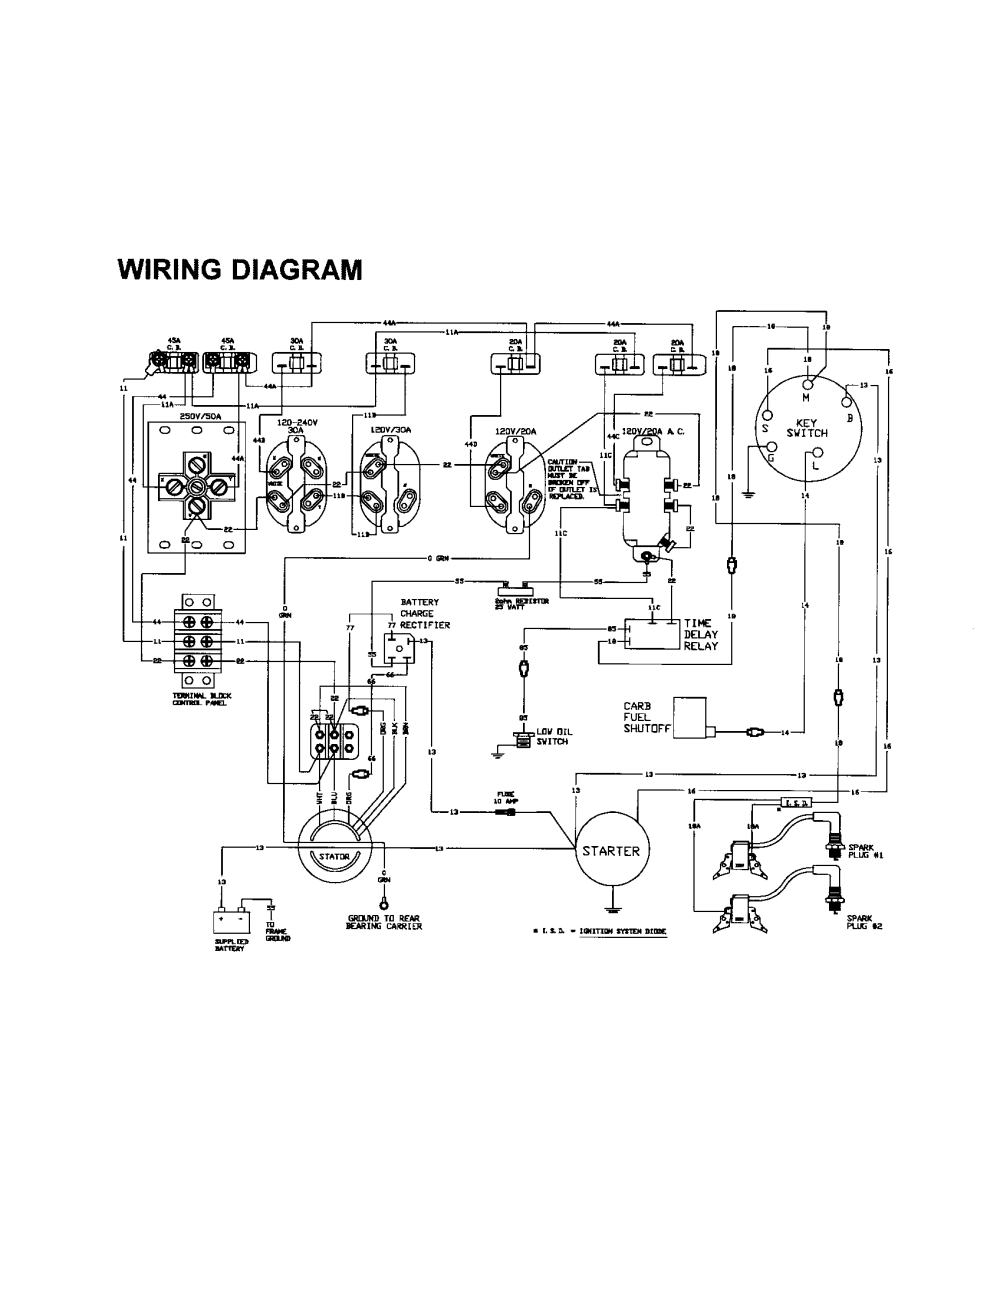 medium resolution of onan 4000 generator wiring diagram onan free engine image for user